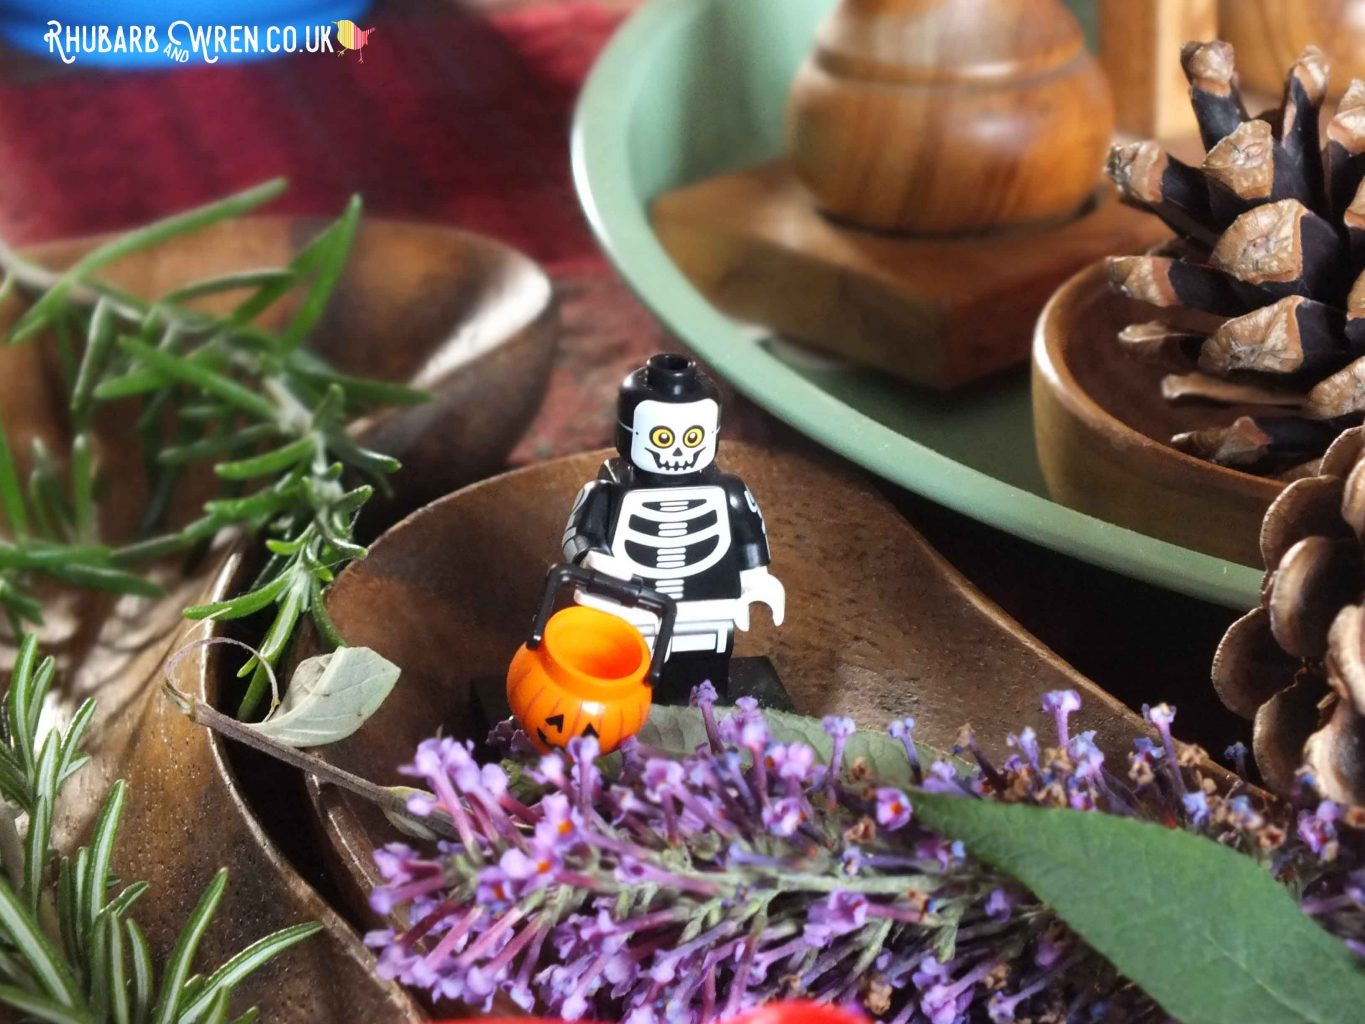 LEGO minifigure skeleton with trick or treat pumpkin basket